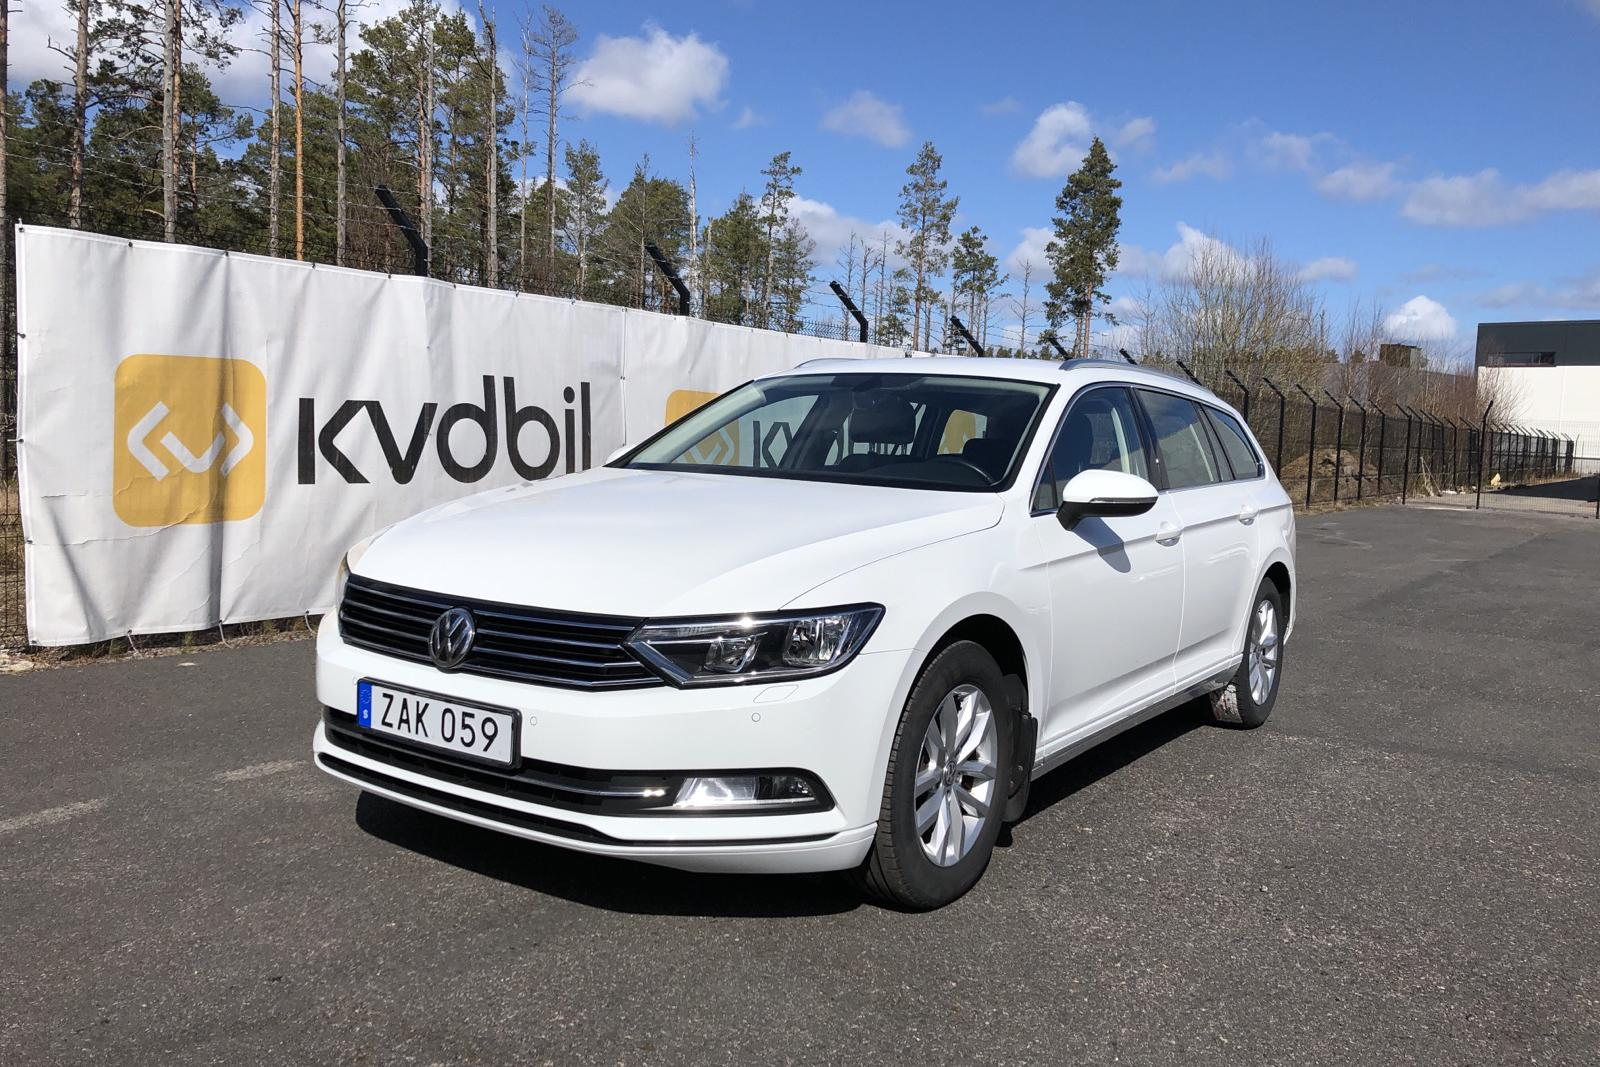 VW Passat 1.4 TSI Sportscombi (150hk) - 43 580 km - Manual - white - 2018